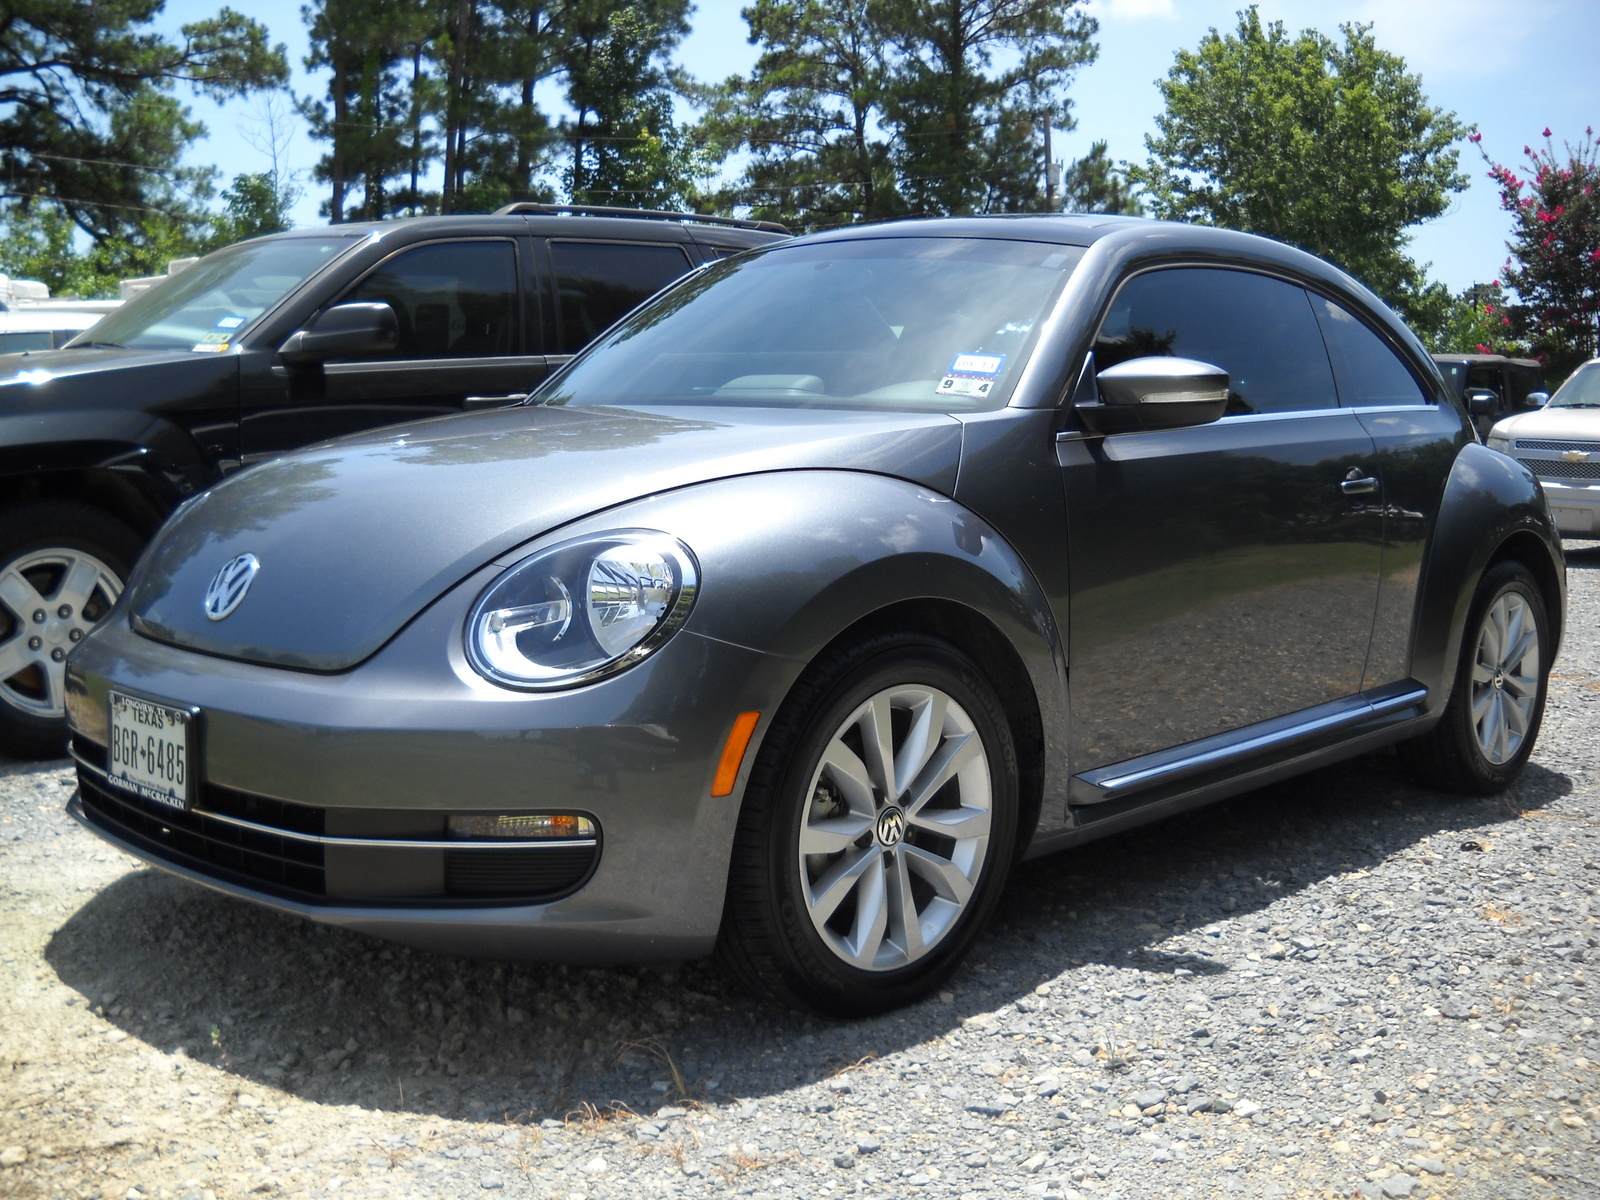 used volkswagen beetle for sale shreveport la cargurus. Black Bedroom Furniture Sets. Home Design Ideas